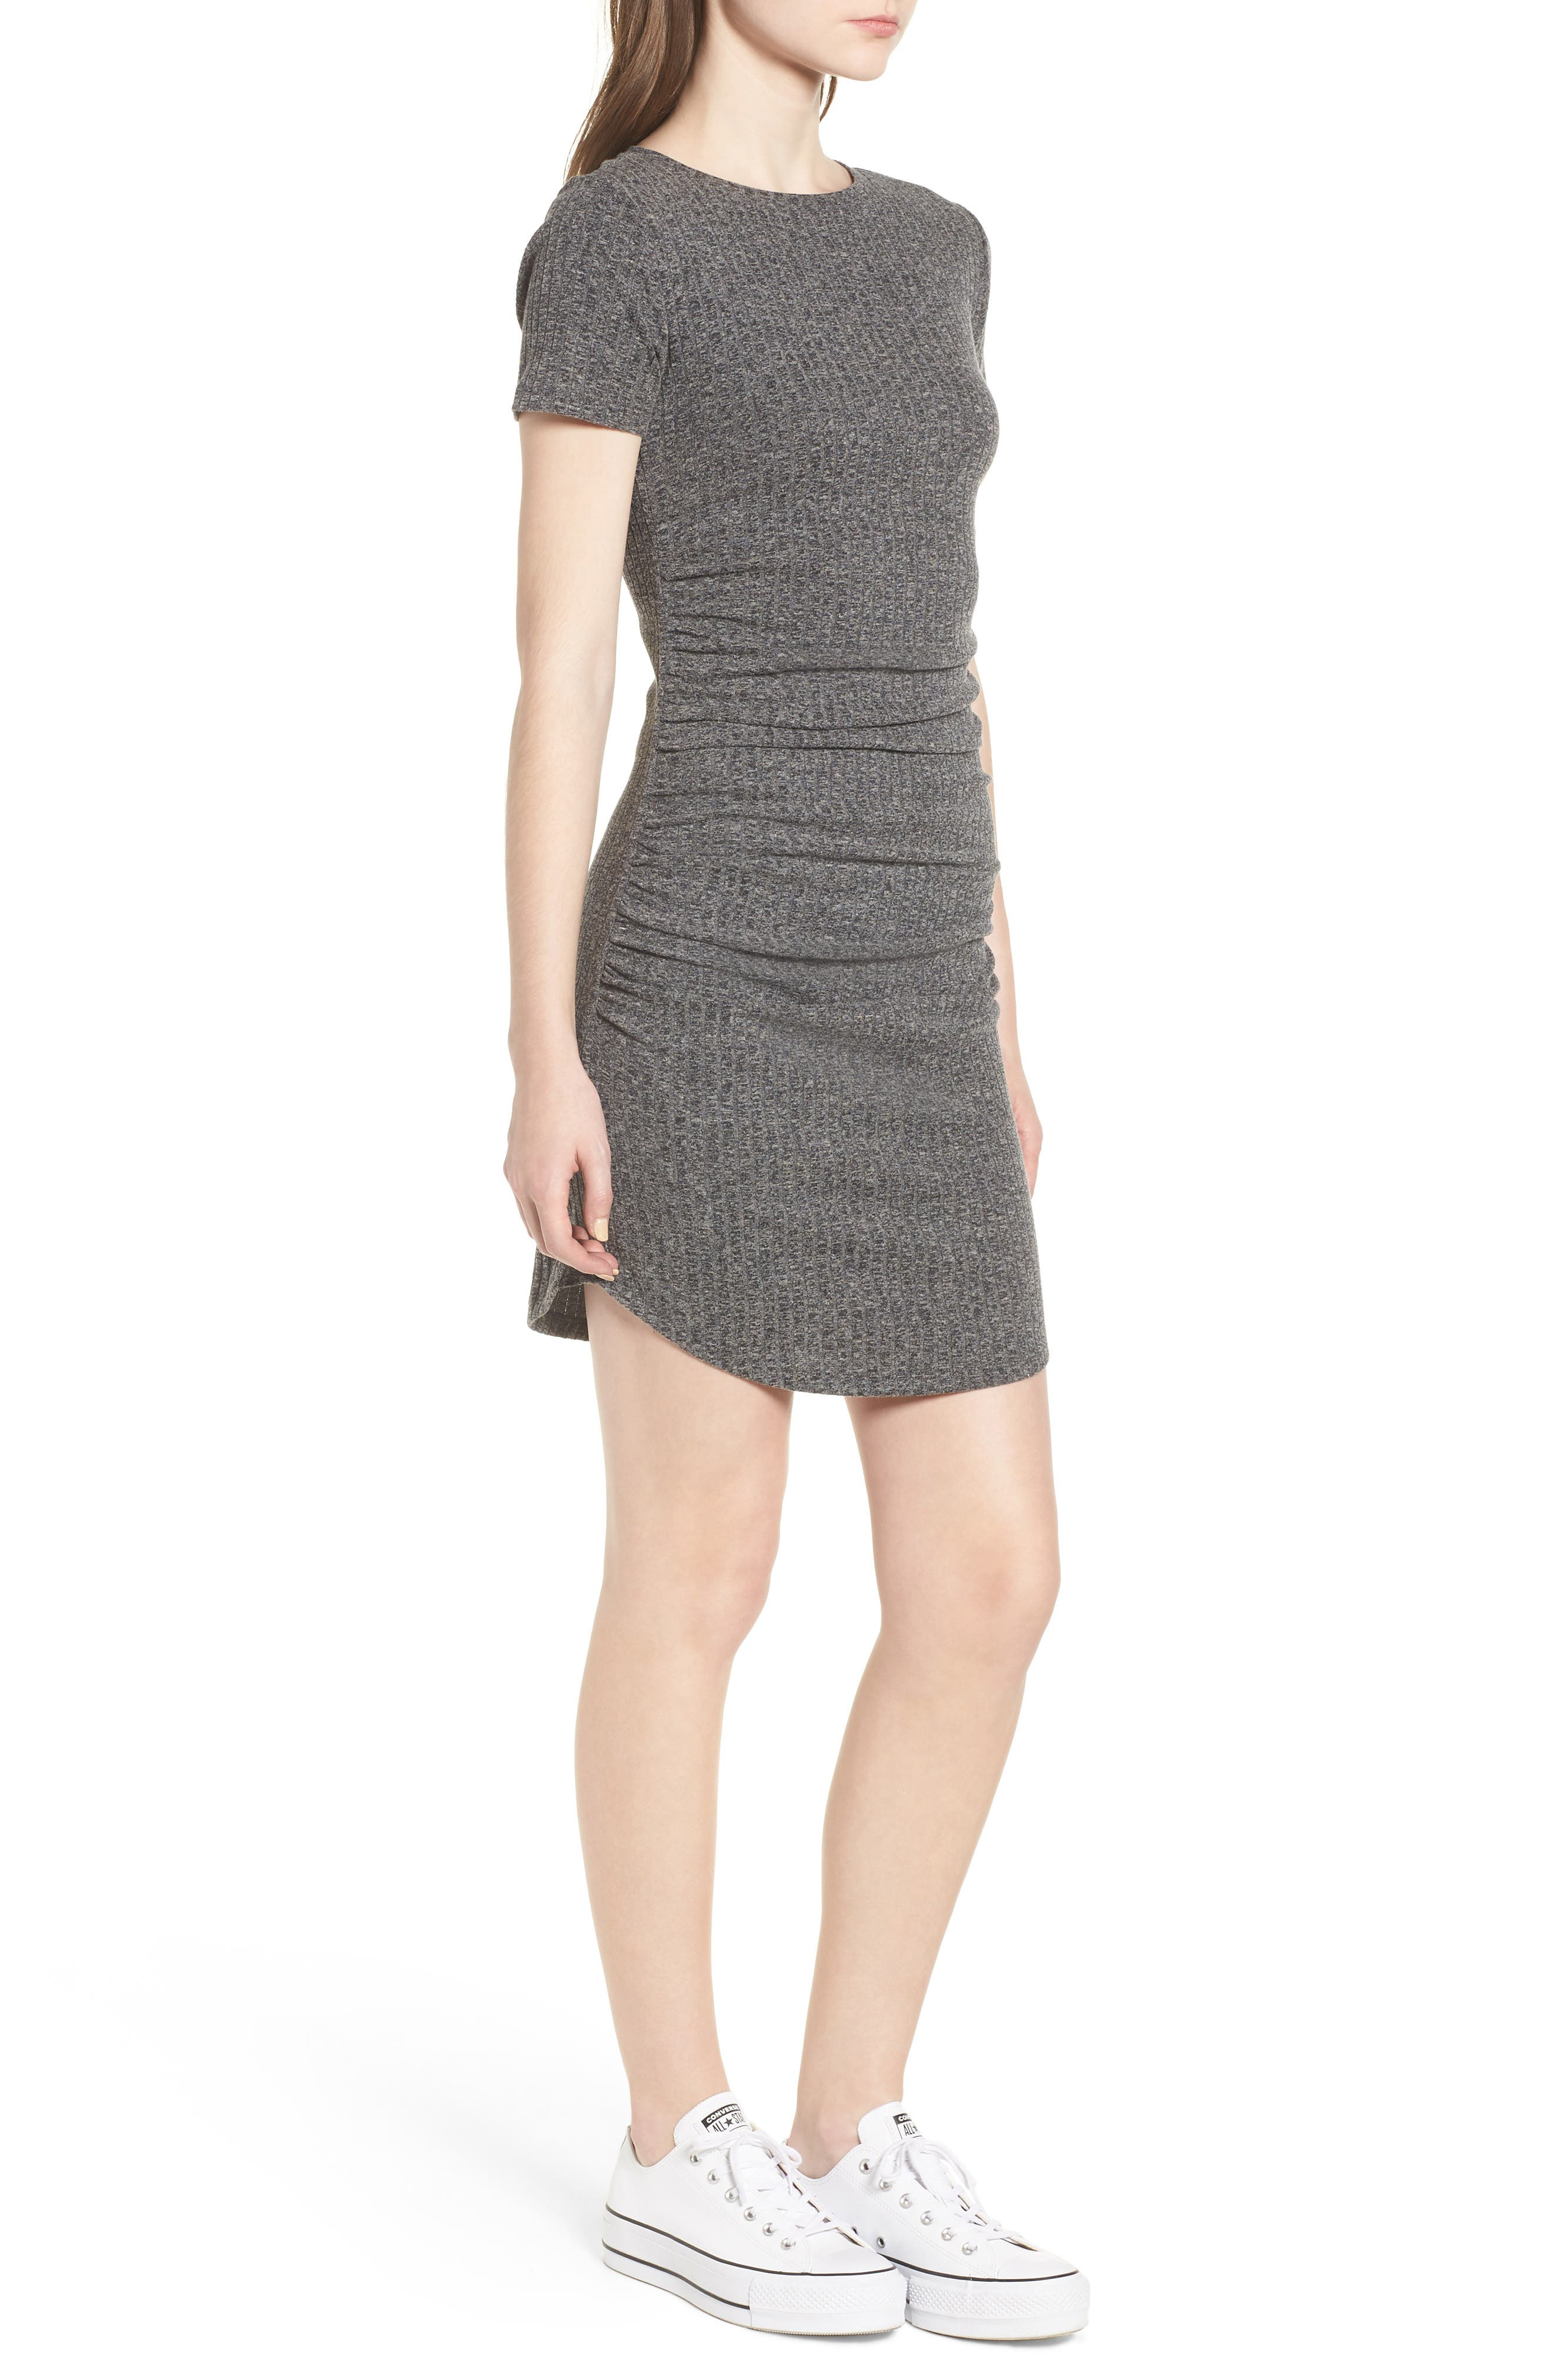 Ruched Ribbed Body-Con Dress,                             Alternate thumbnail 3, color,                             GREY MEDIUM CHARCOAL HEATHER